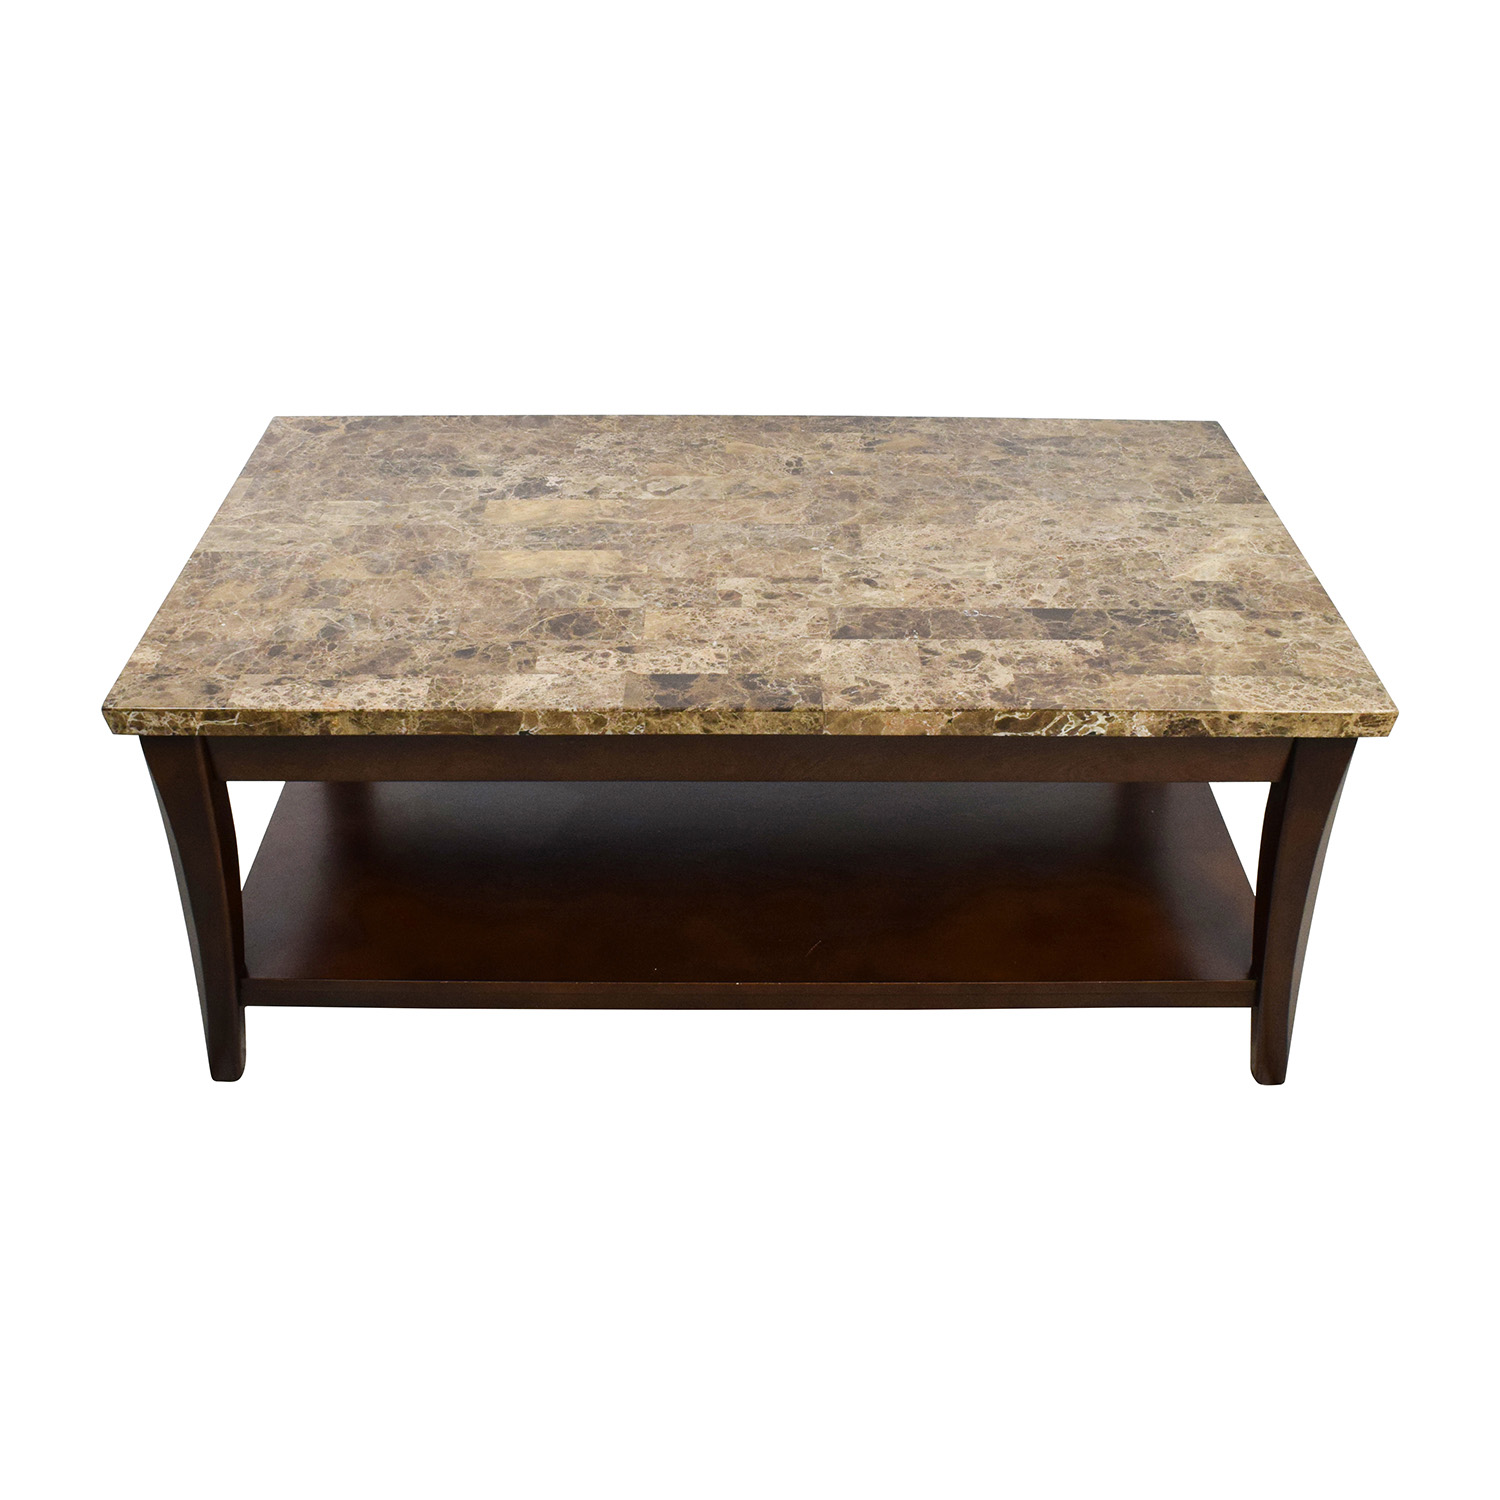 71% OFF Marble and Wood Coffee Table Tables